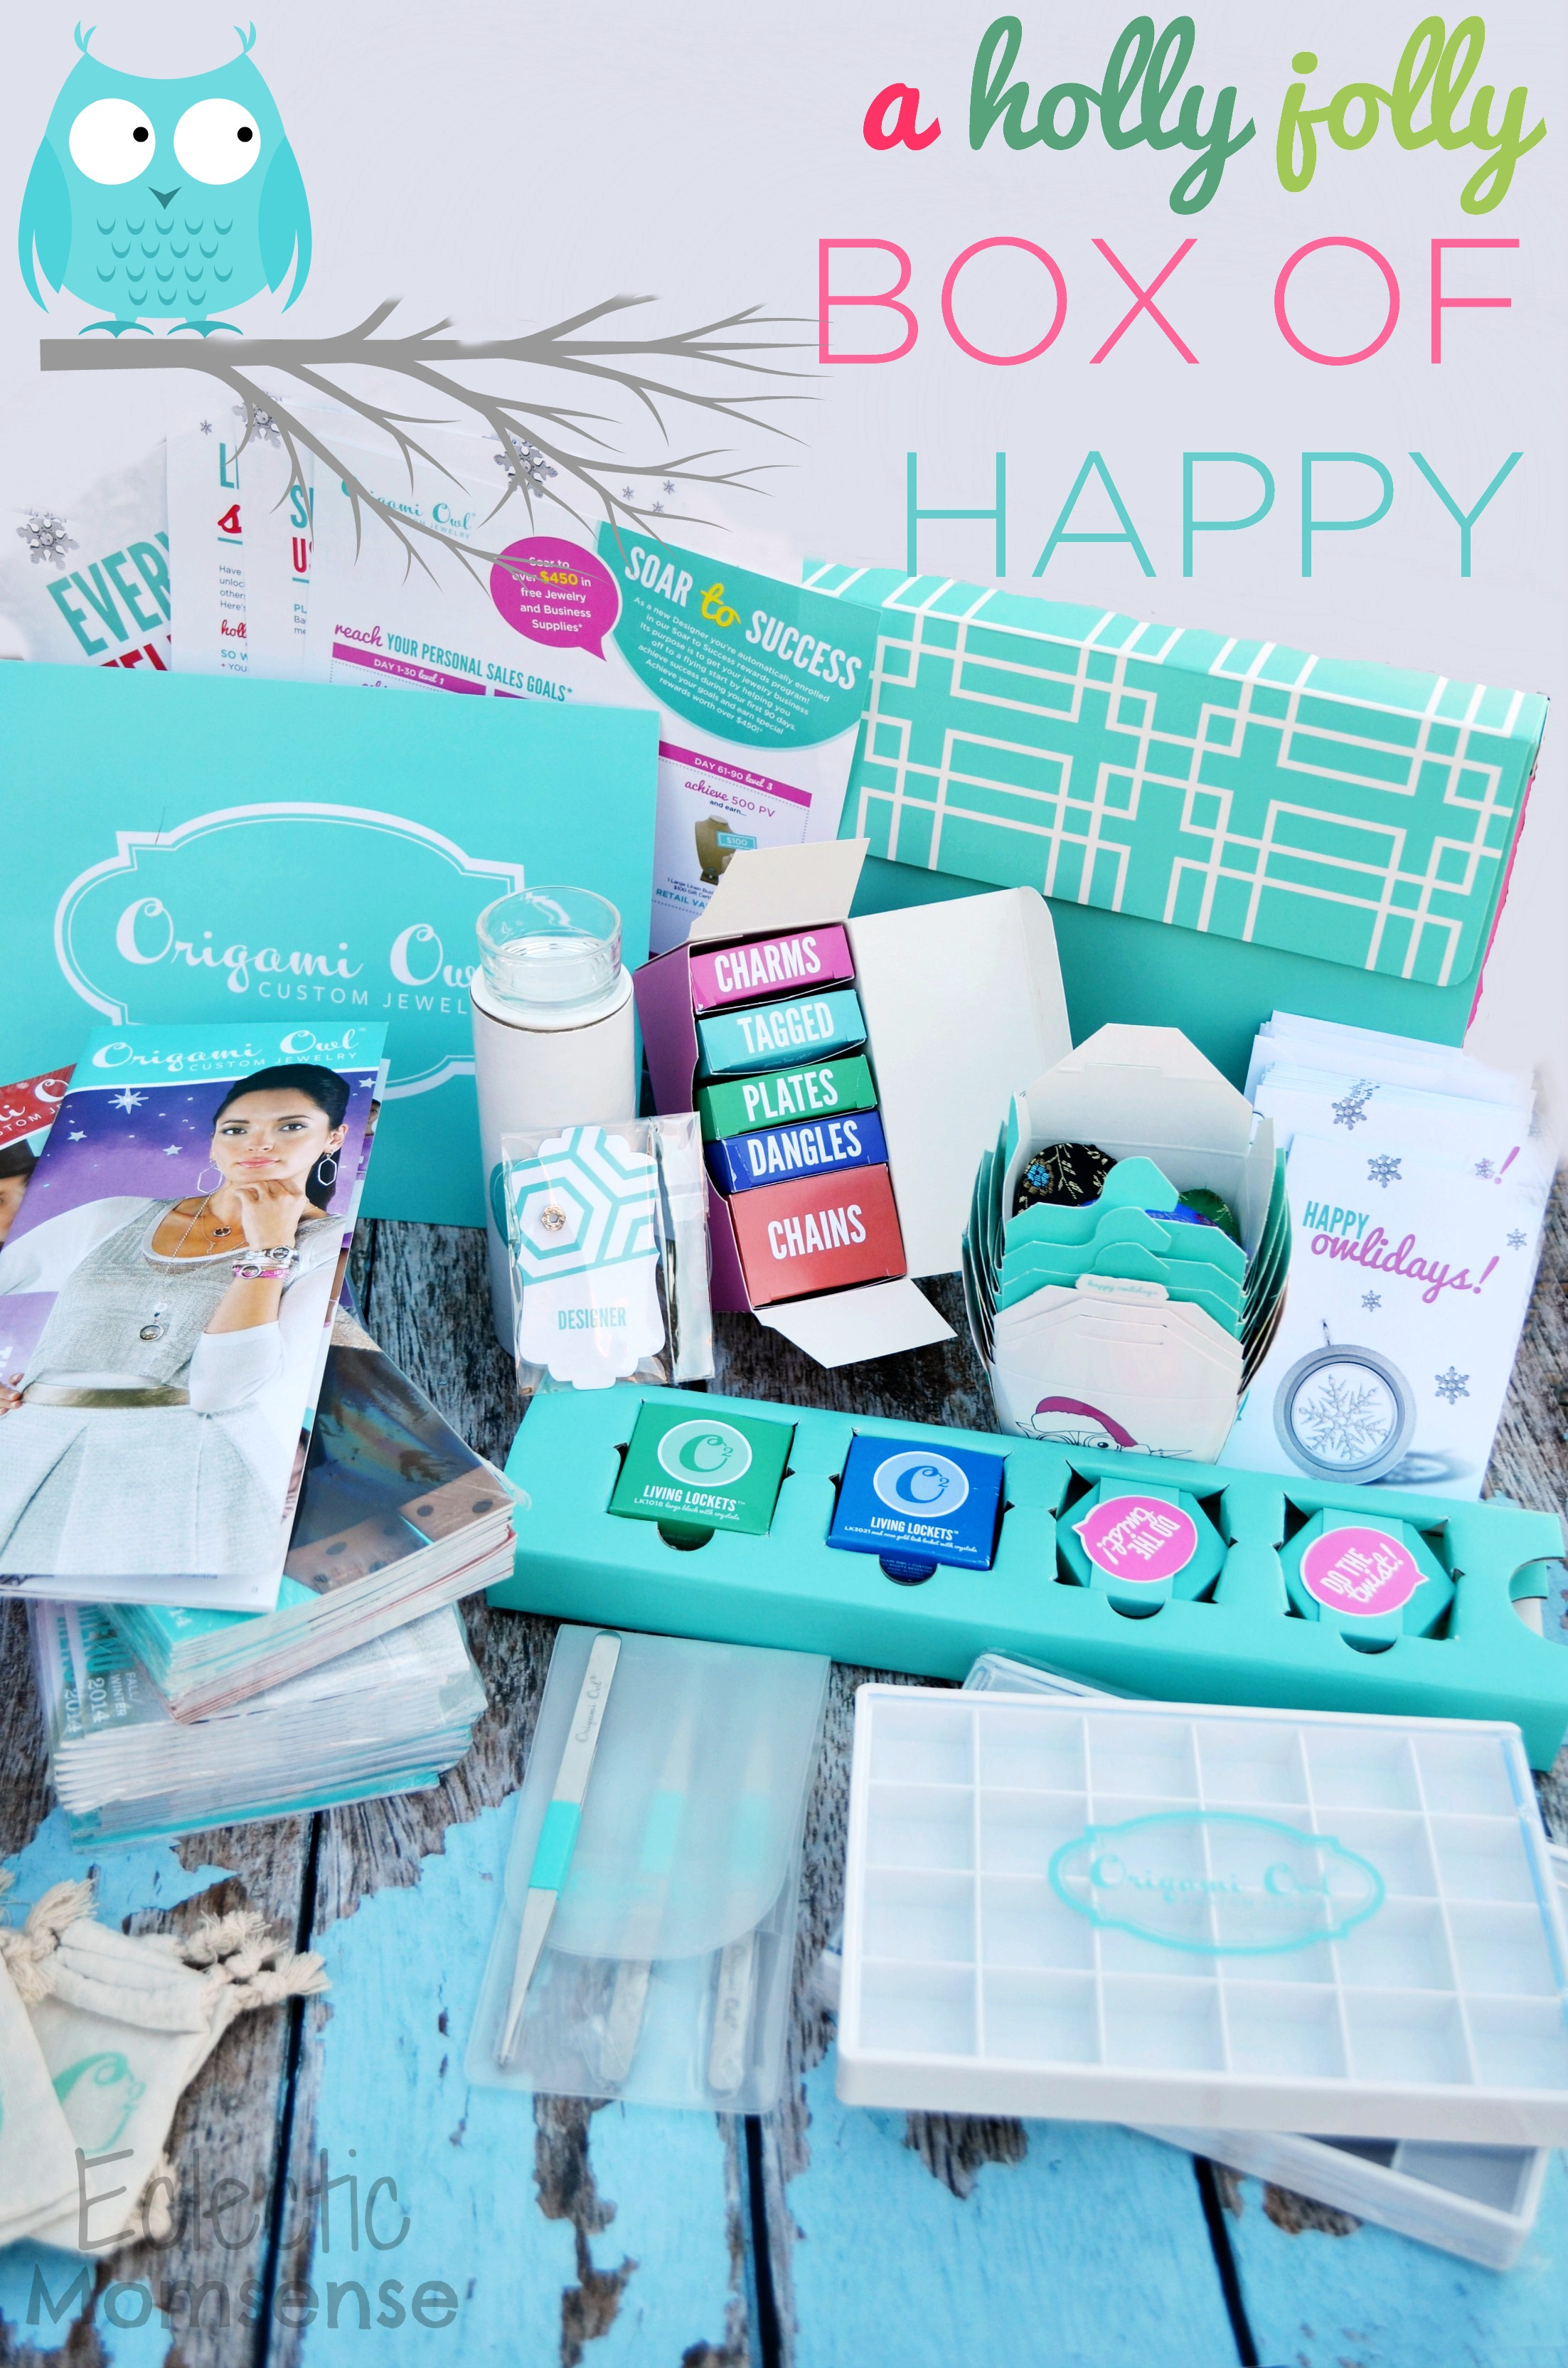 Origami owl unboxing a holly jolly box of happy eclectic momsense origami owl unboxing the holly jolly box of happy o2journey origamiowl jeuxipadfo Images